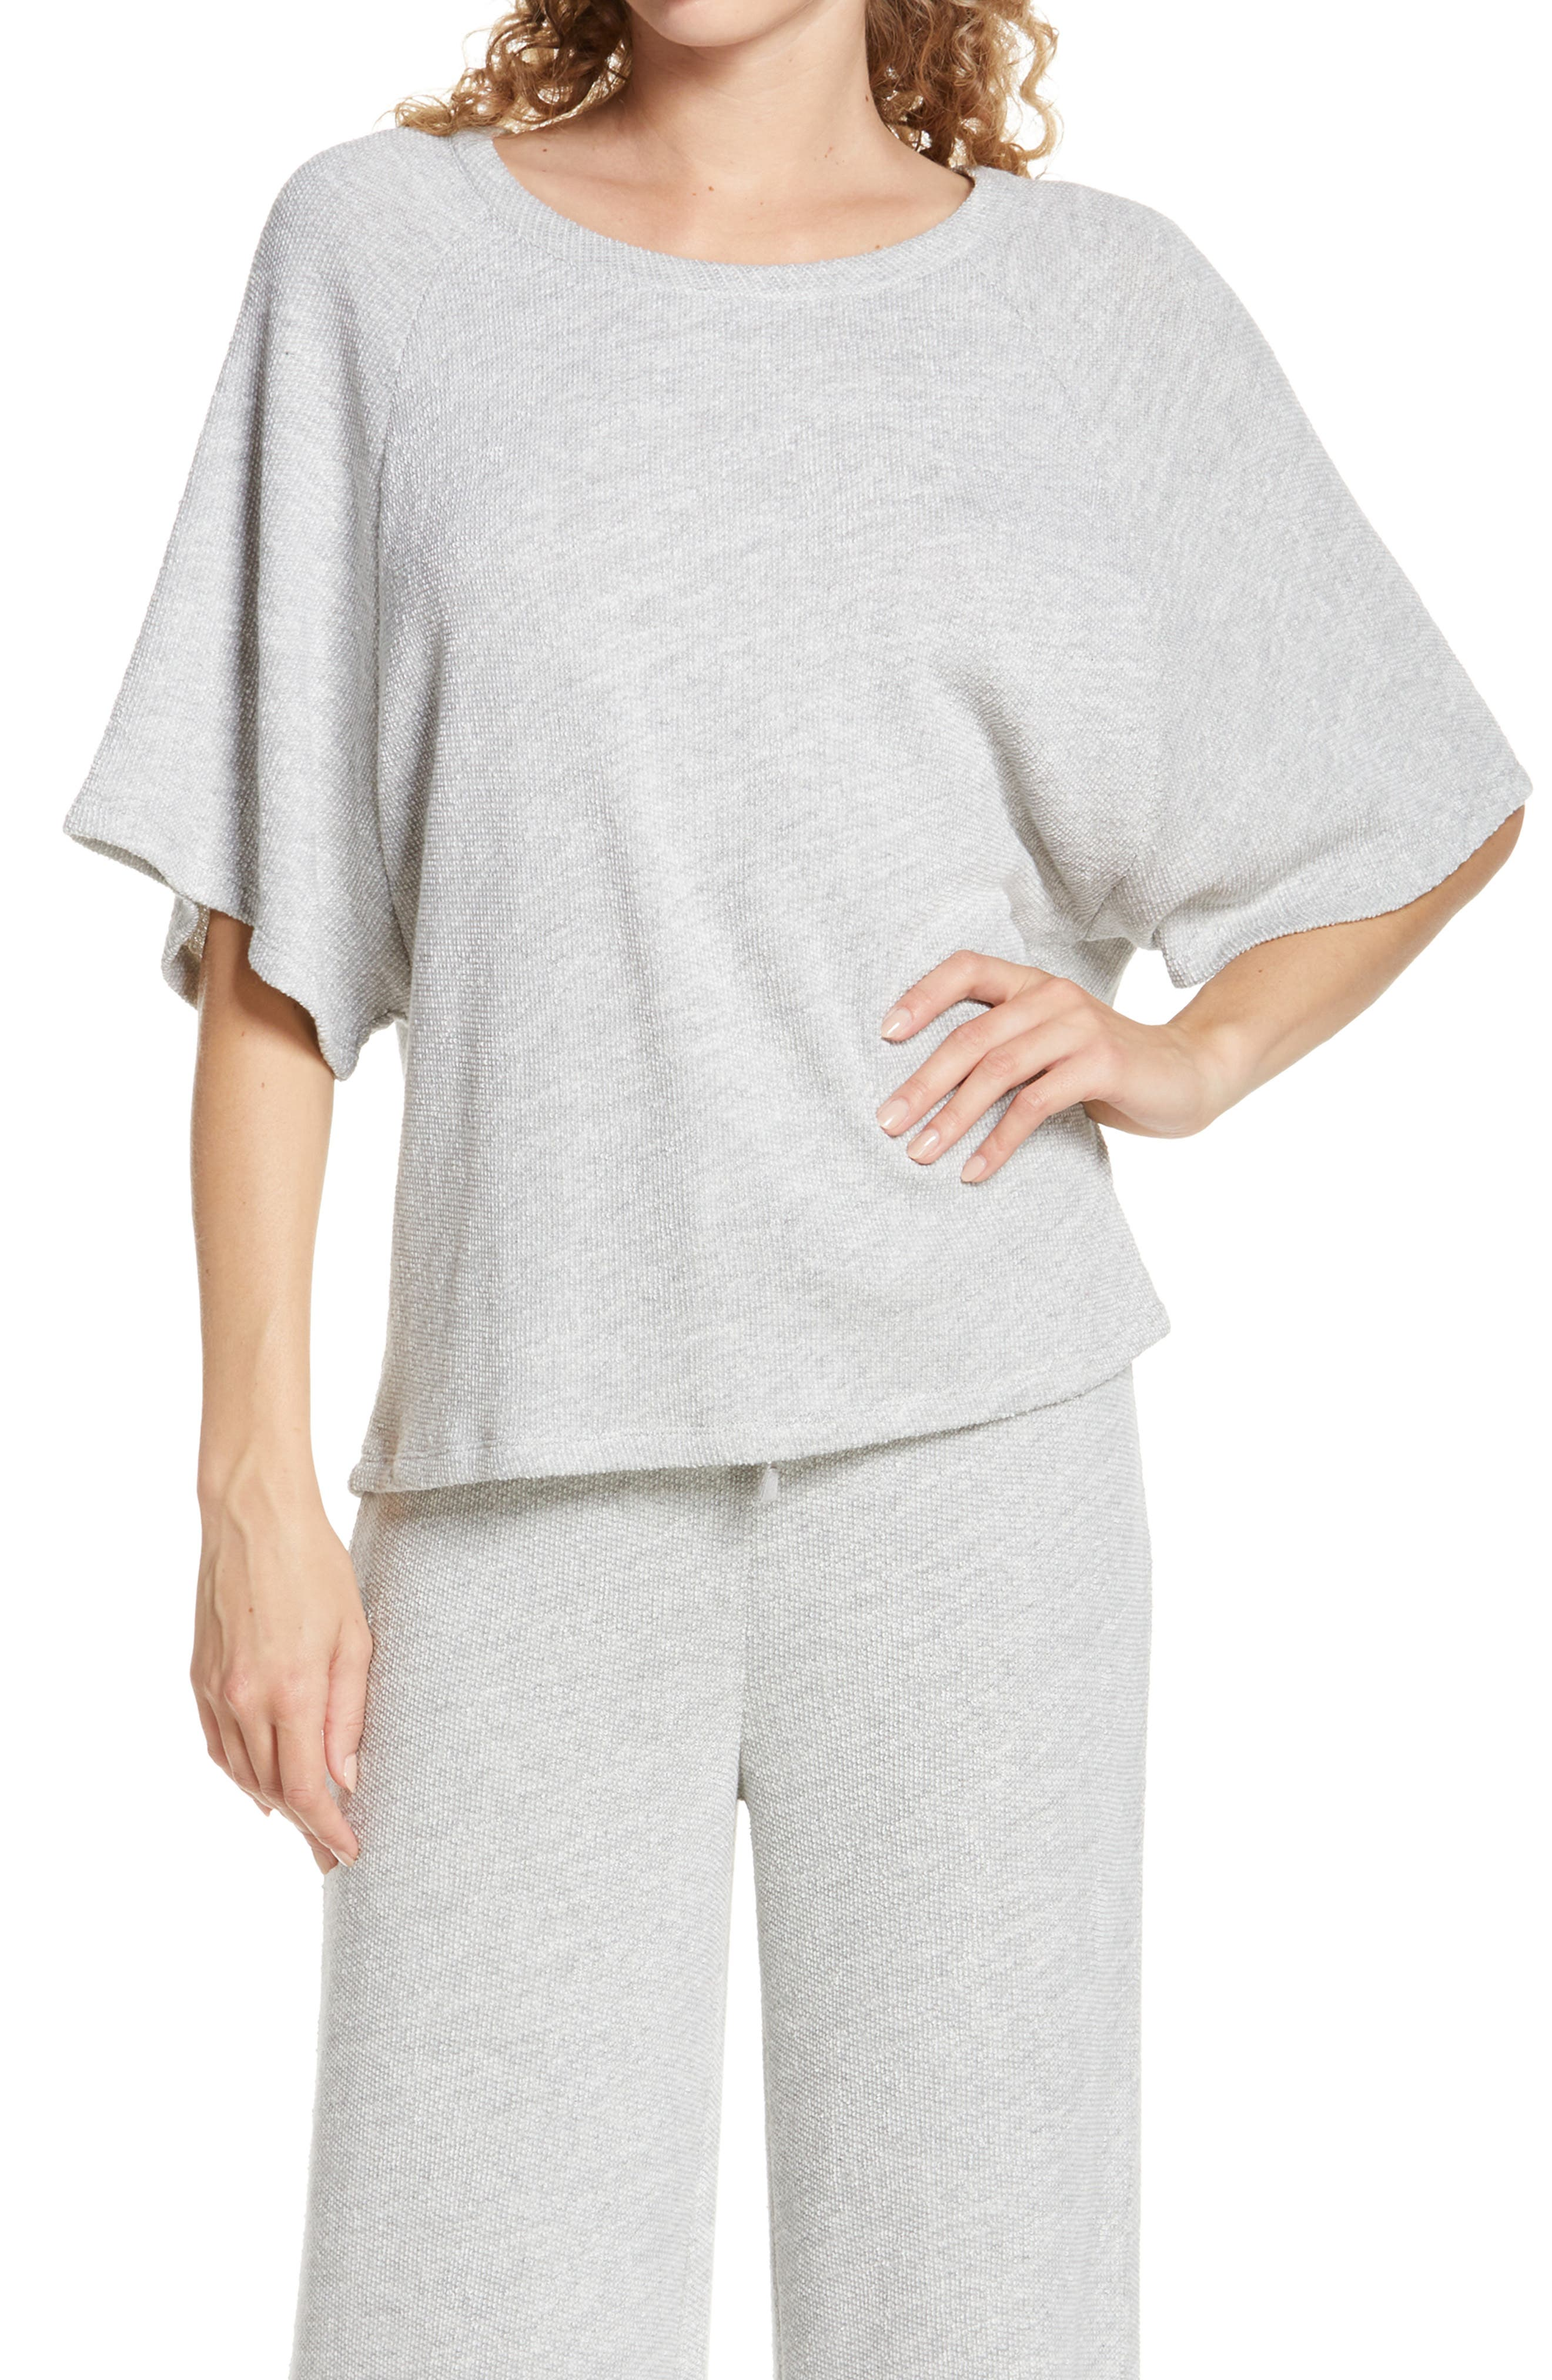 Leisure Lover Top